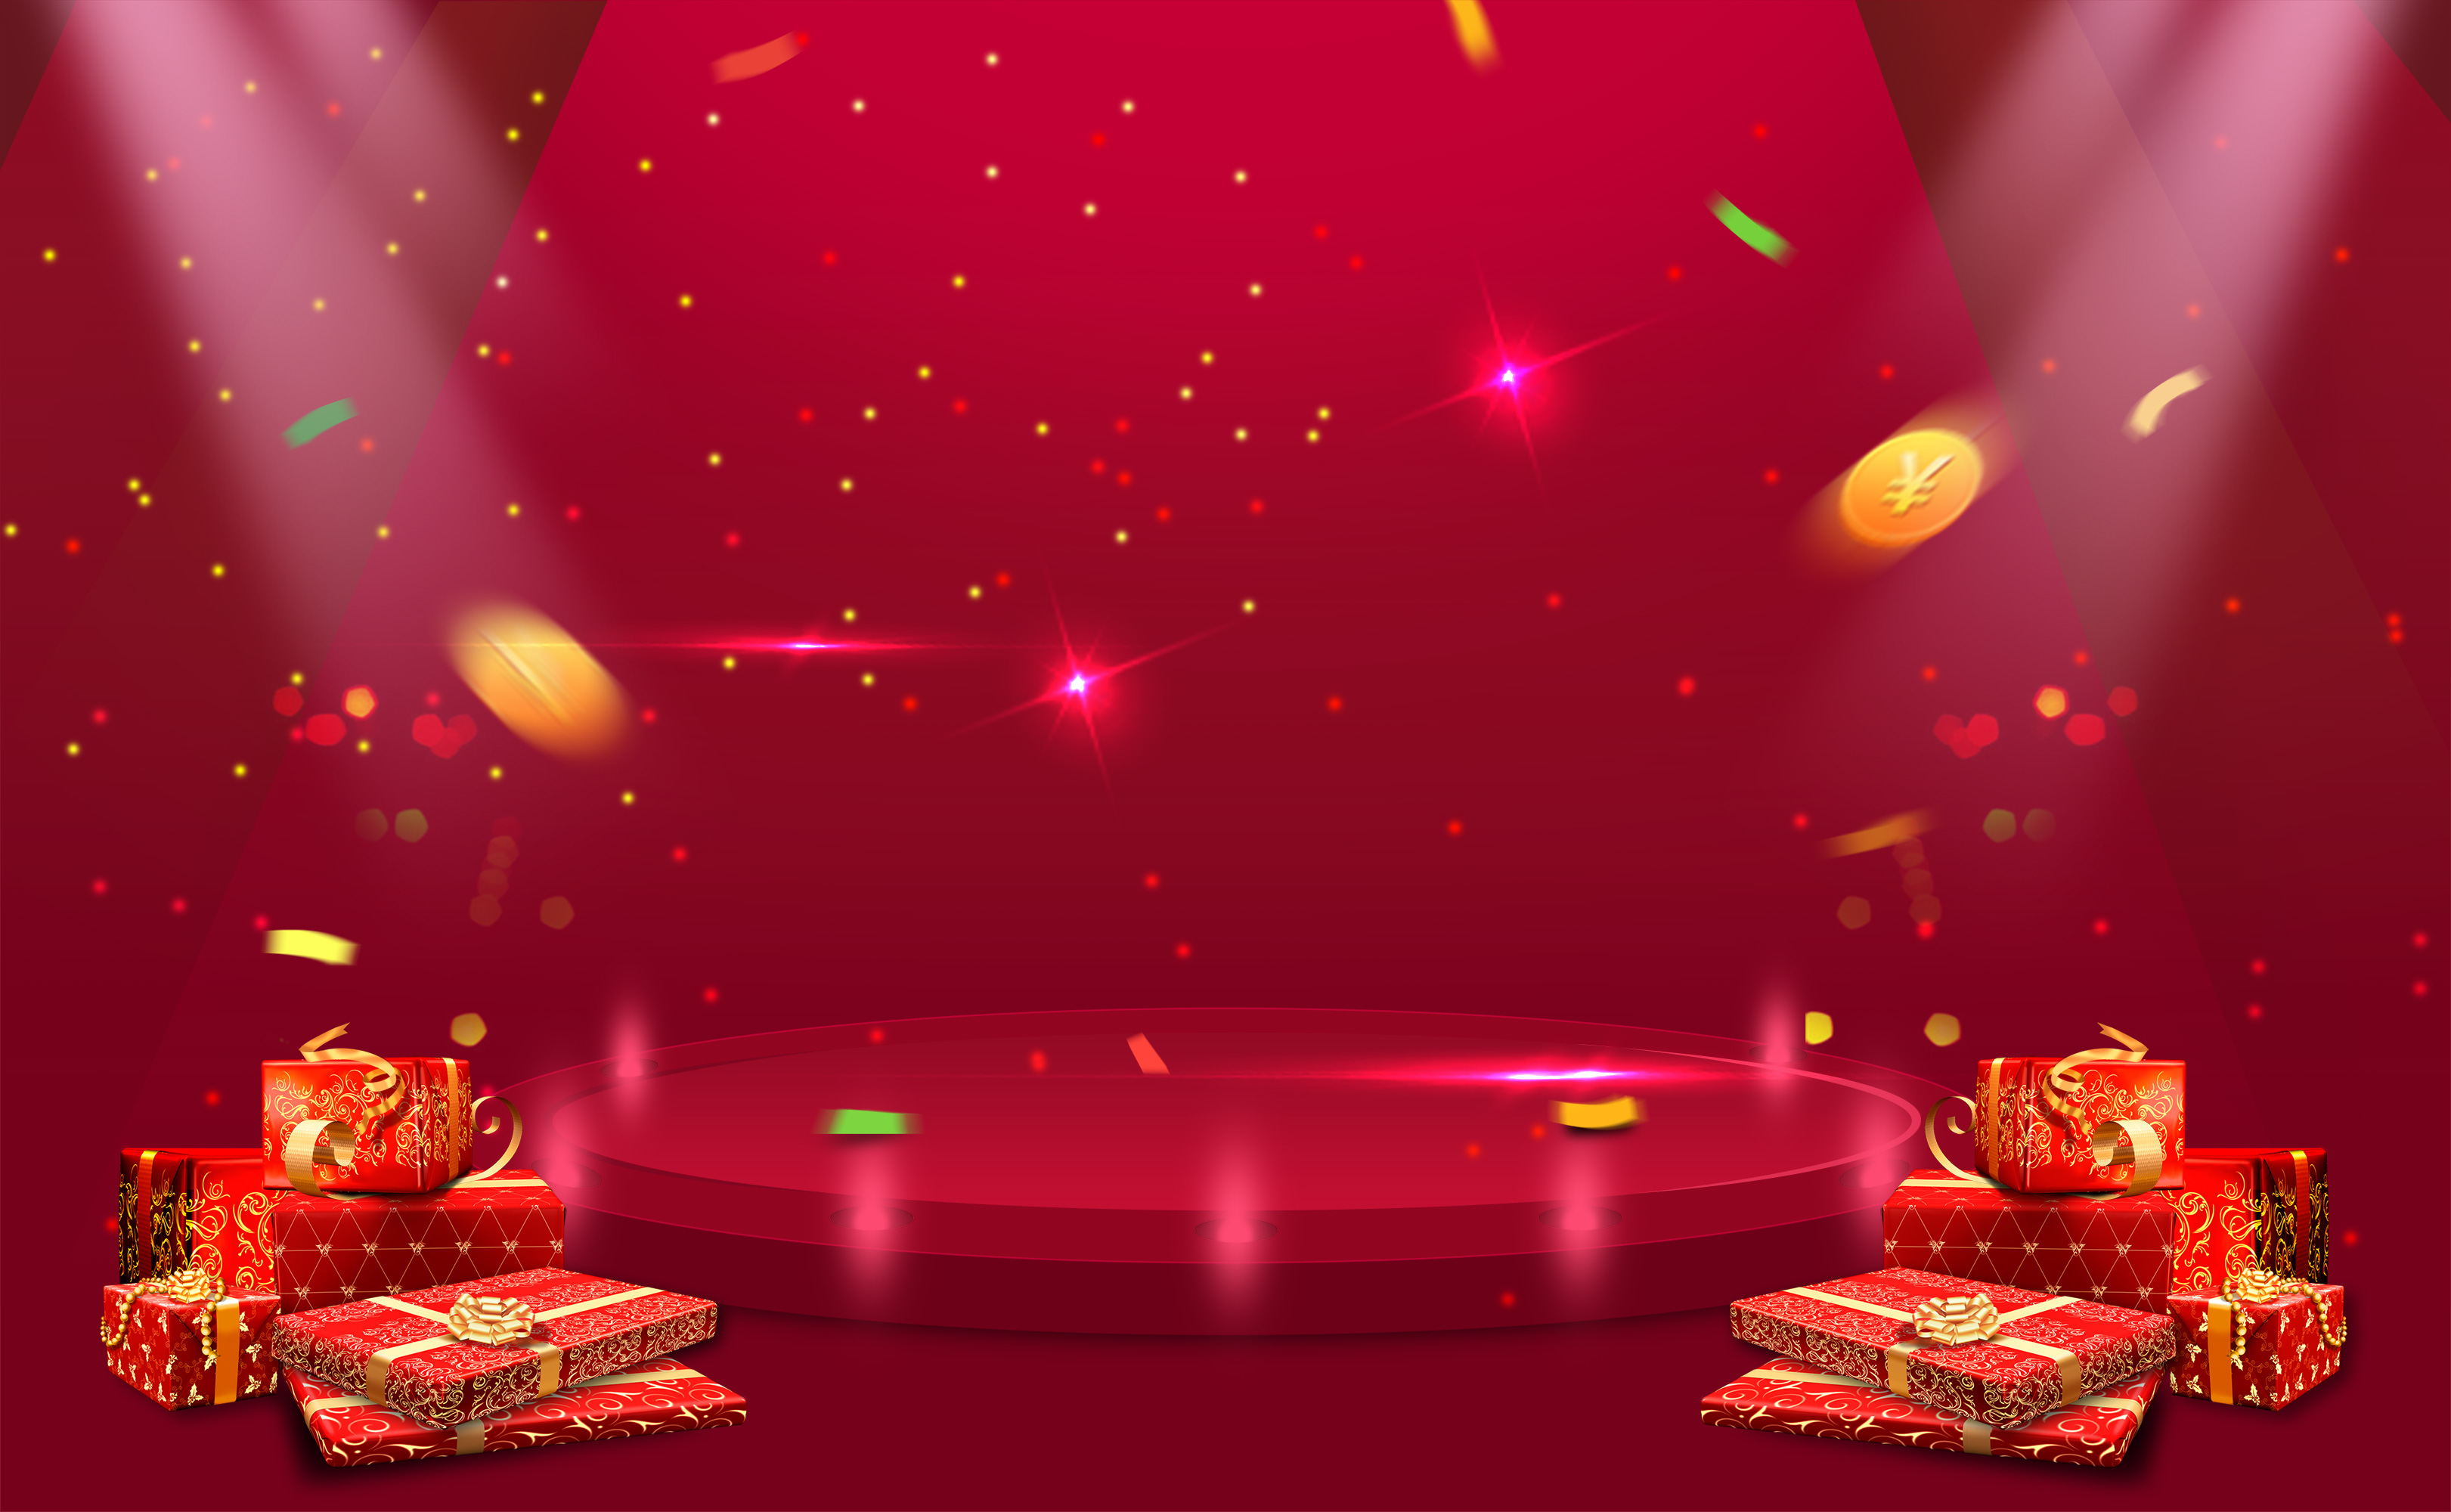 condensing stage prizes  stage  spotlight  prize background image for free download